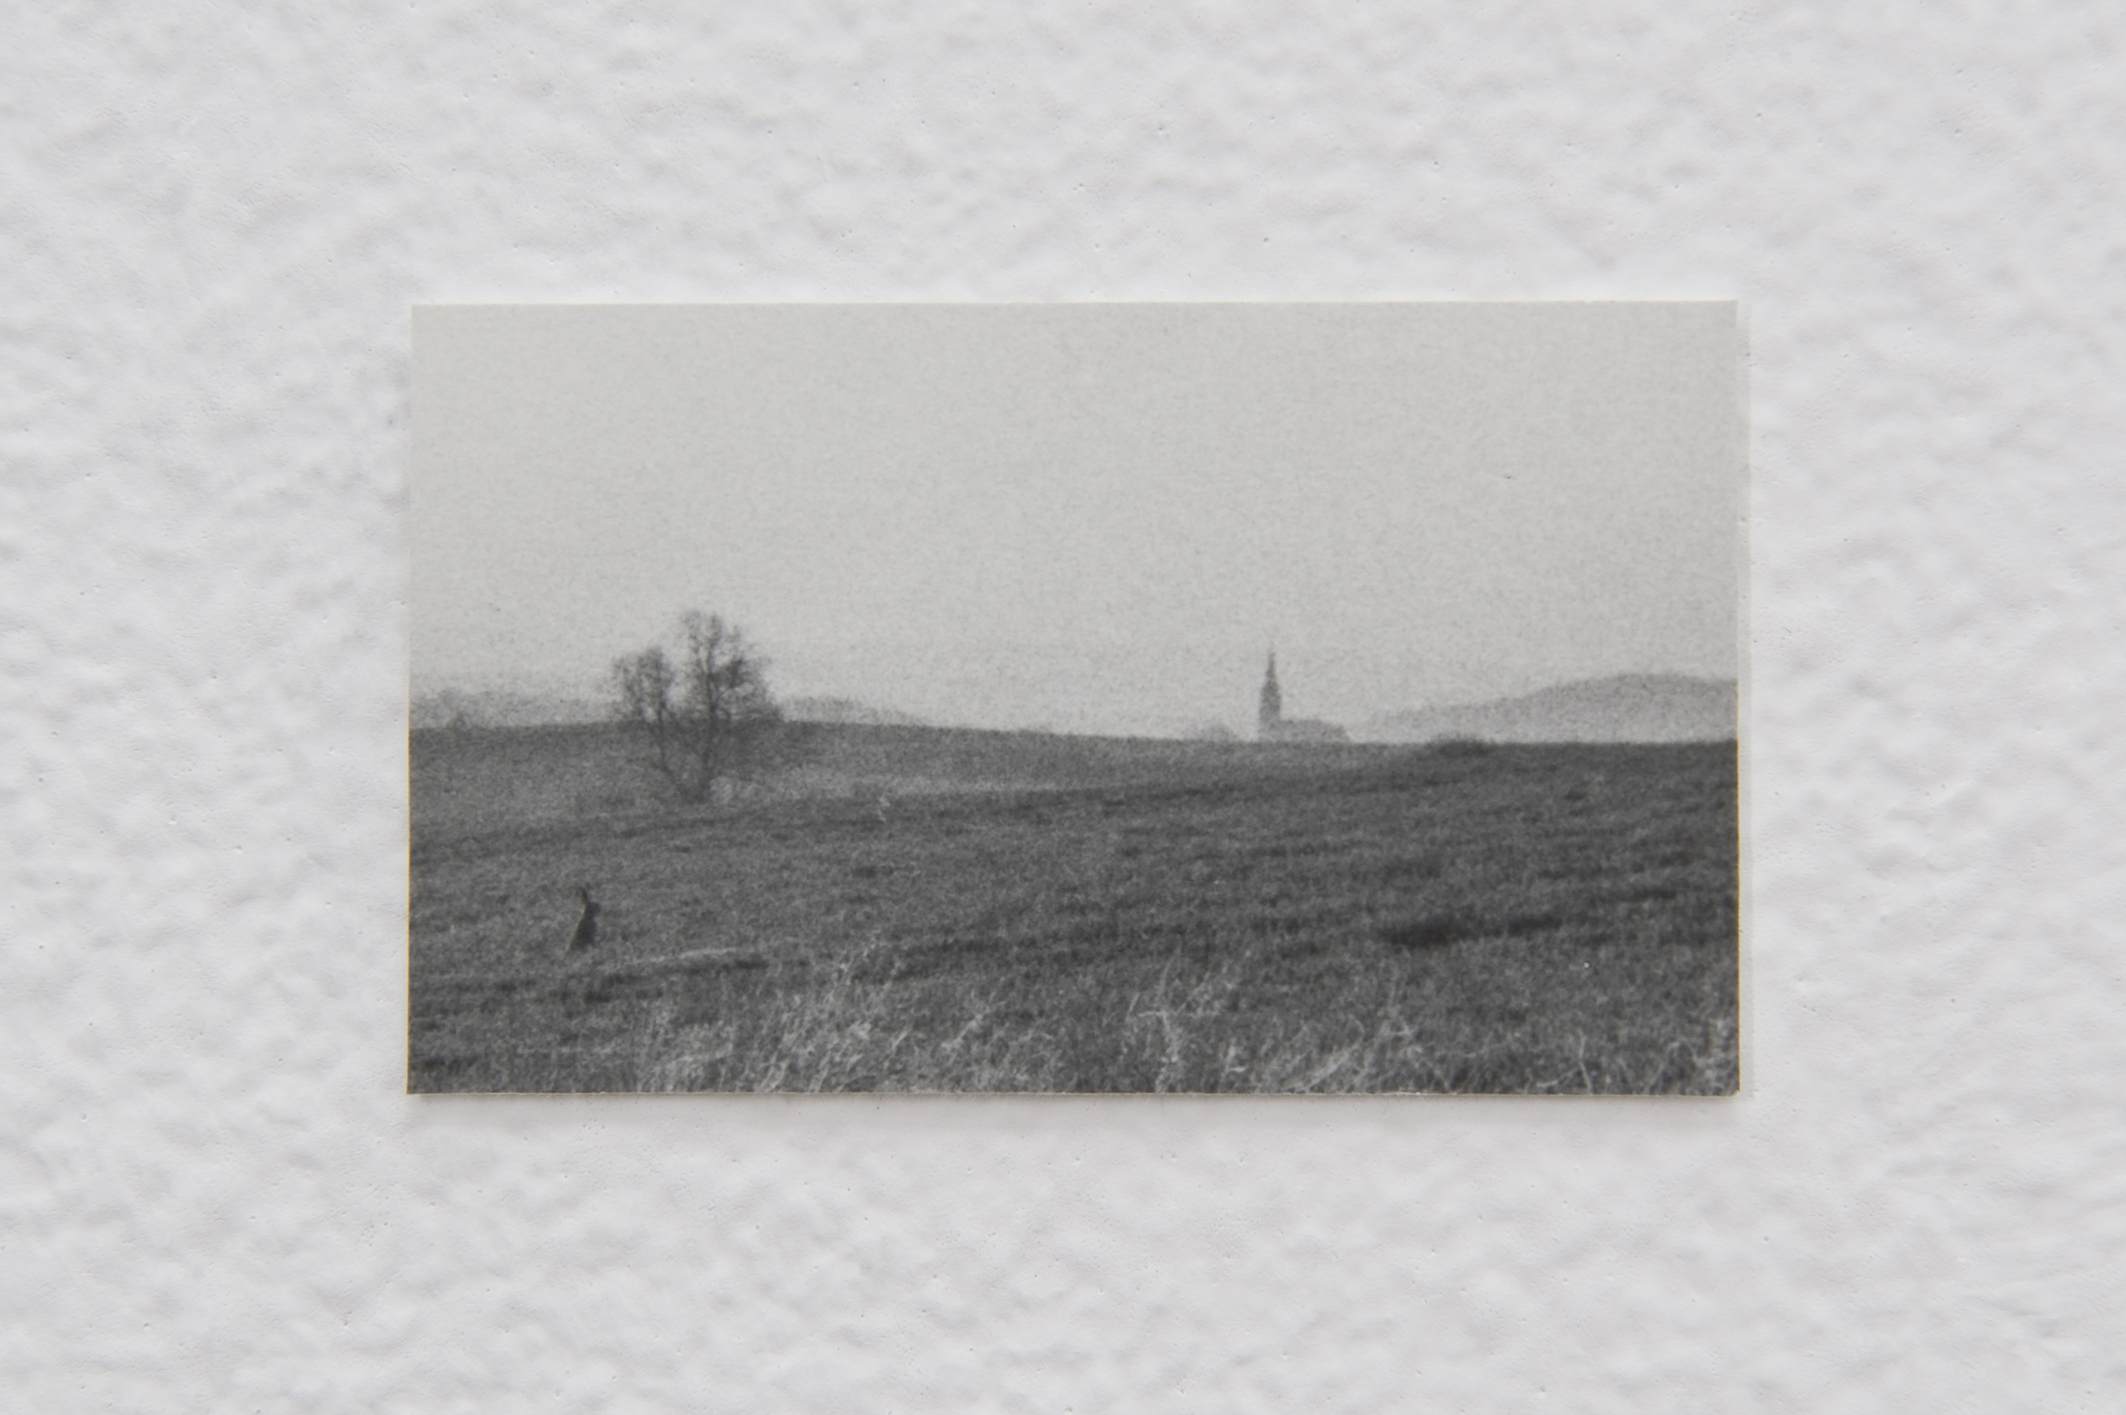 Untitled (Landscape), 2014 | Jochen Lempert | ProjecteSD